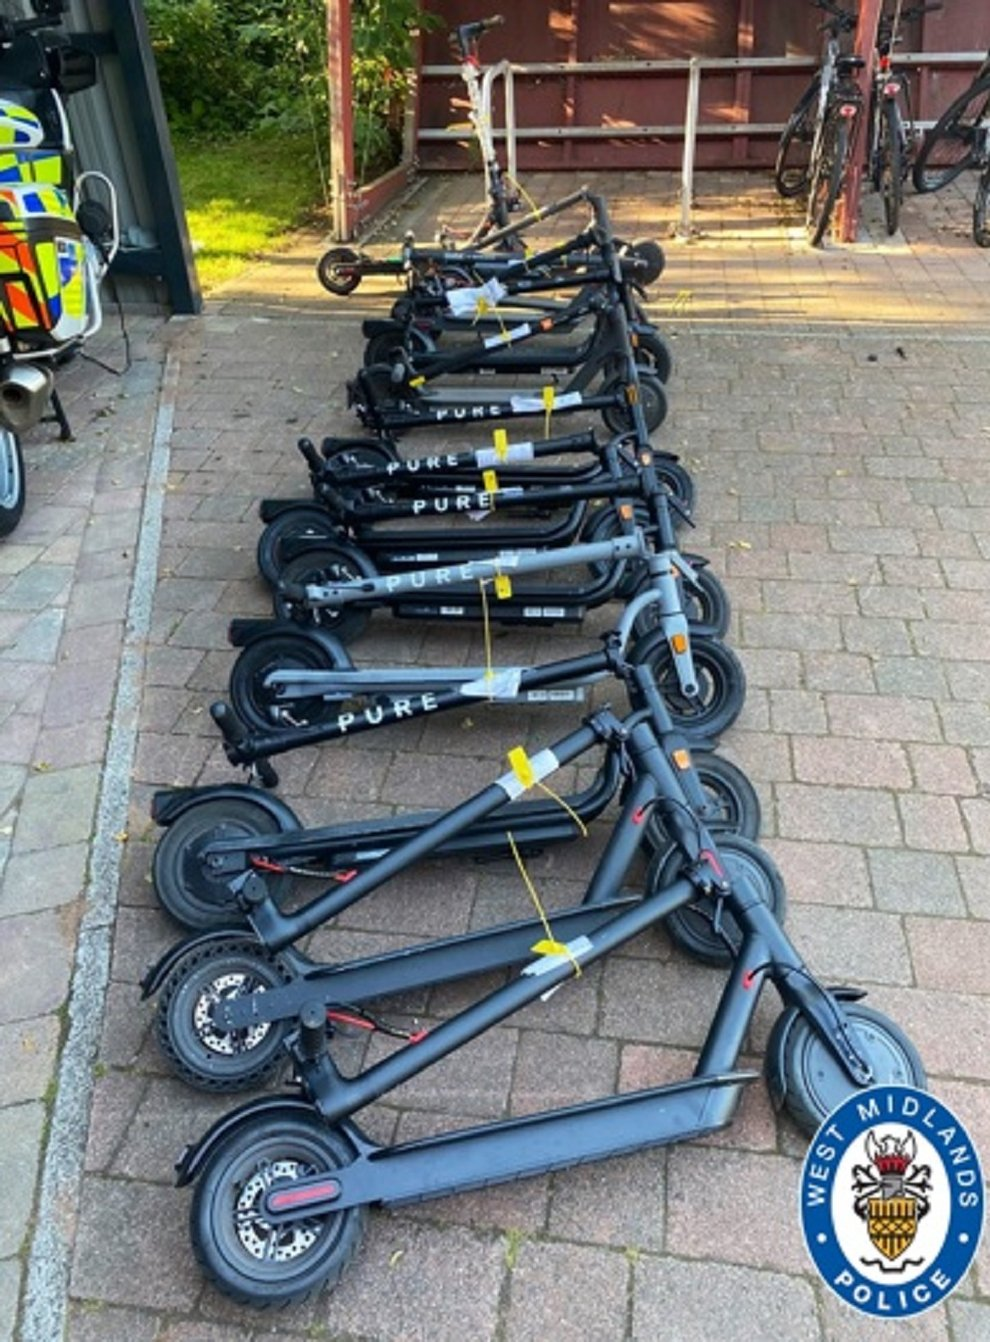 E-scooters seized by West Midlands Police